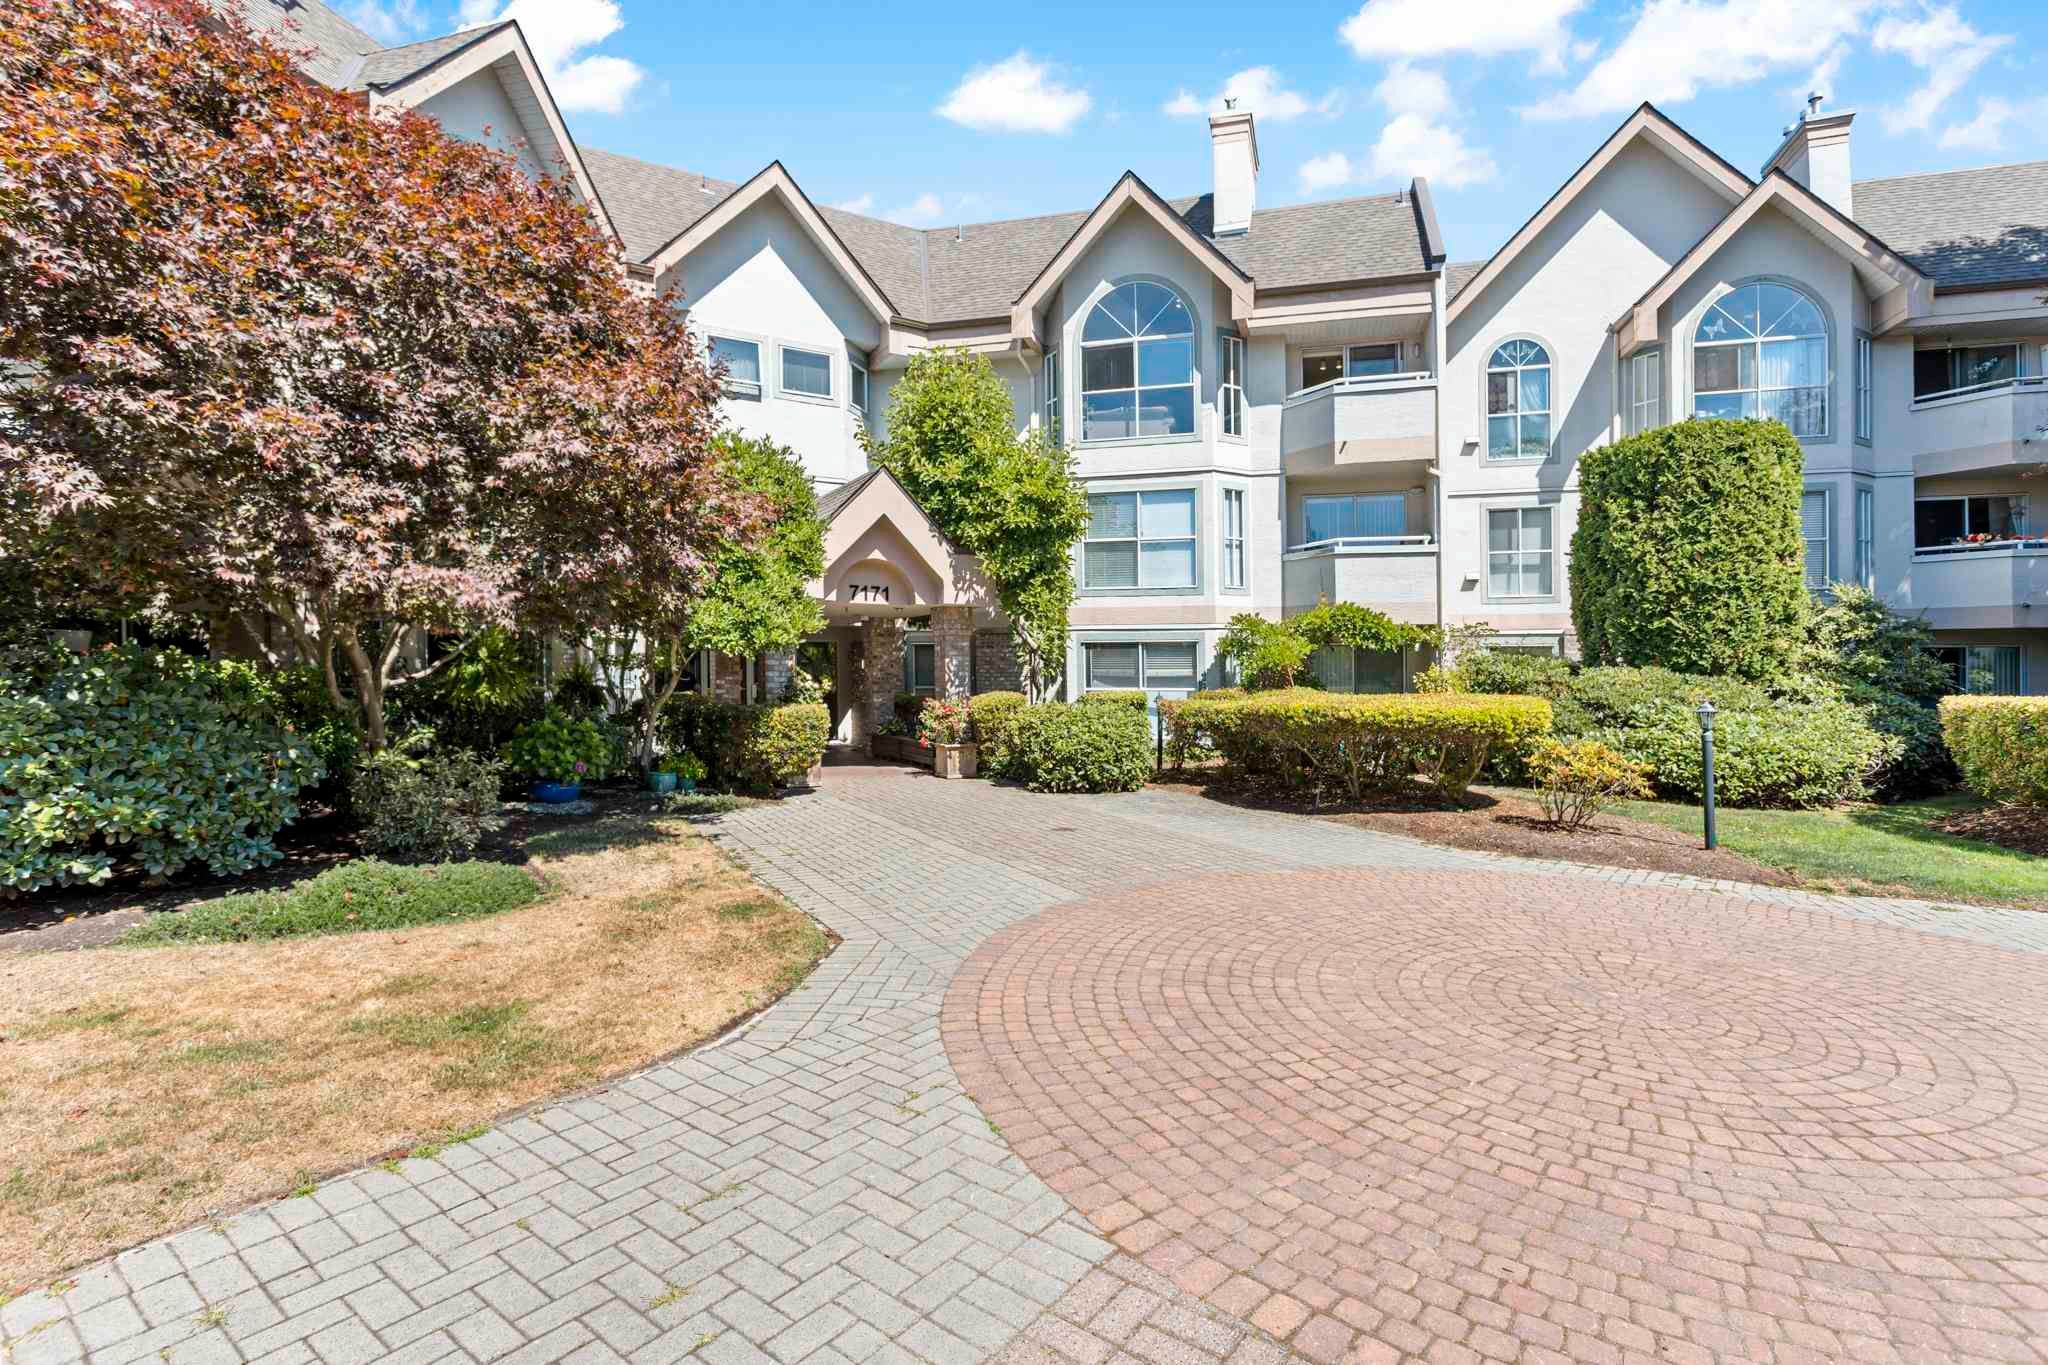 """Main Photo: 320 7171 121 Street in Surrey: West Newton Condo for sale in """"The Highlands"""" : MLS®# R2602798"""